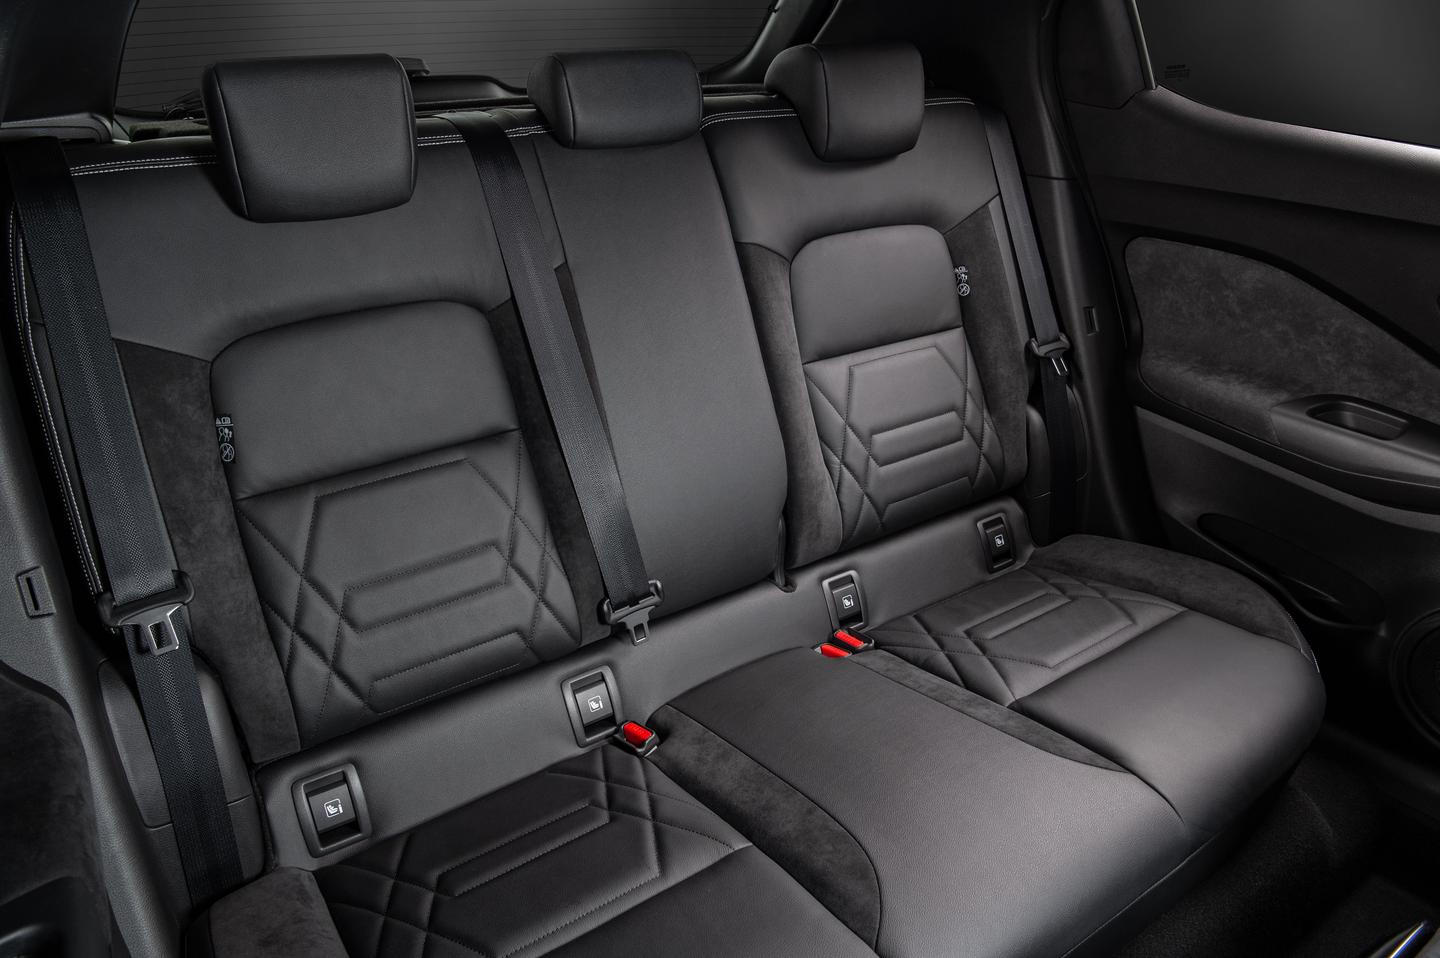 Back seats have a couple inches more legroom